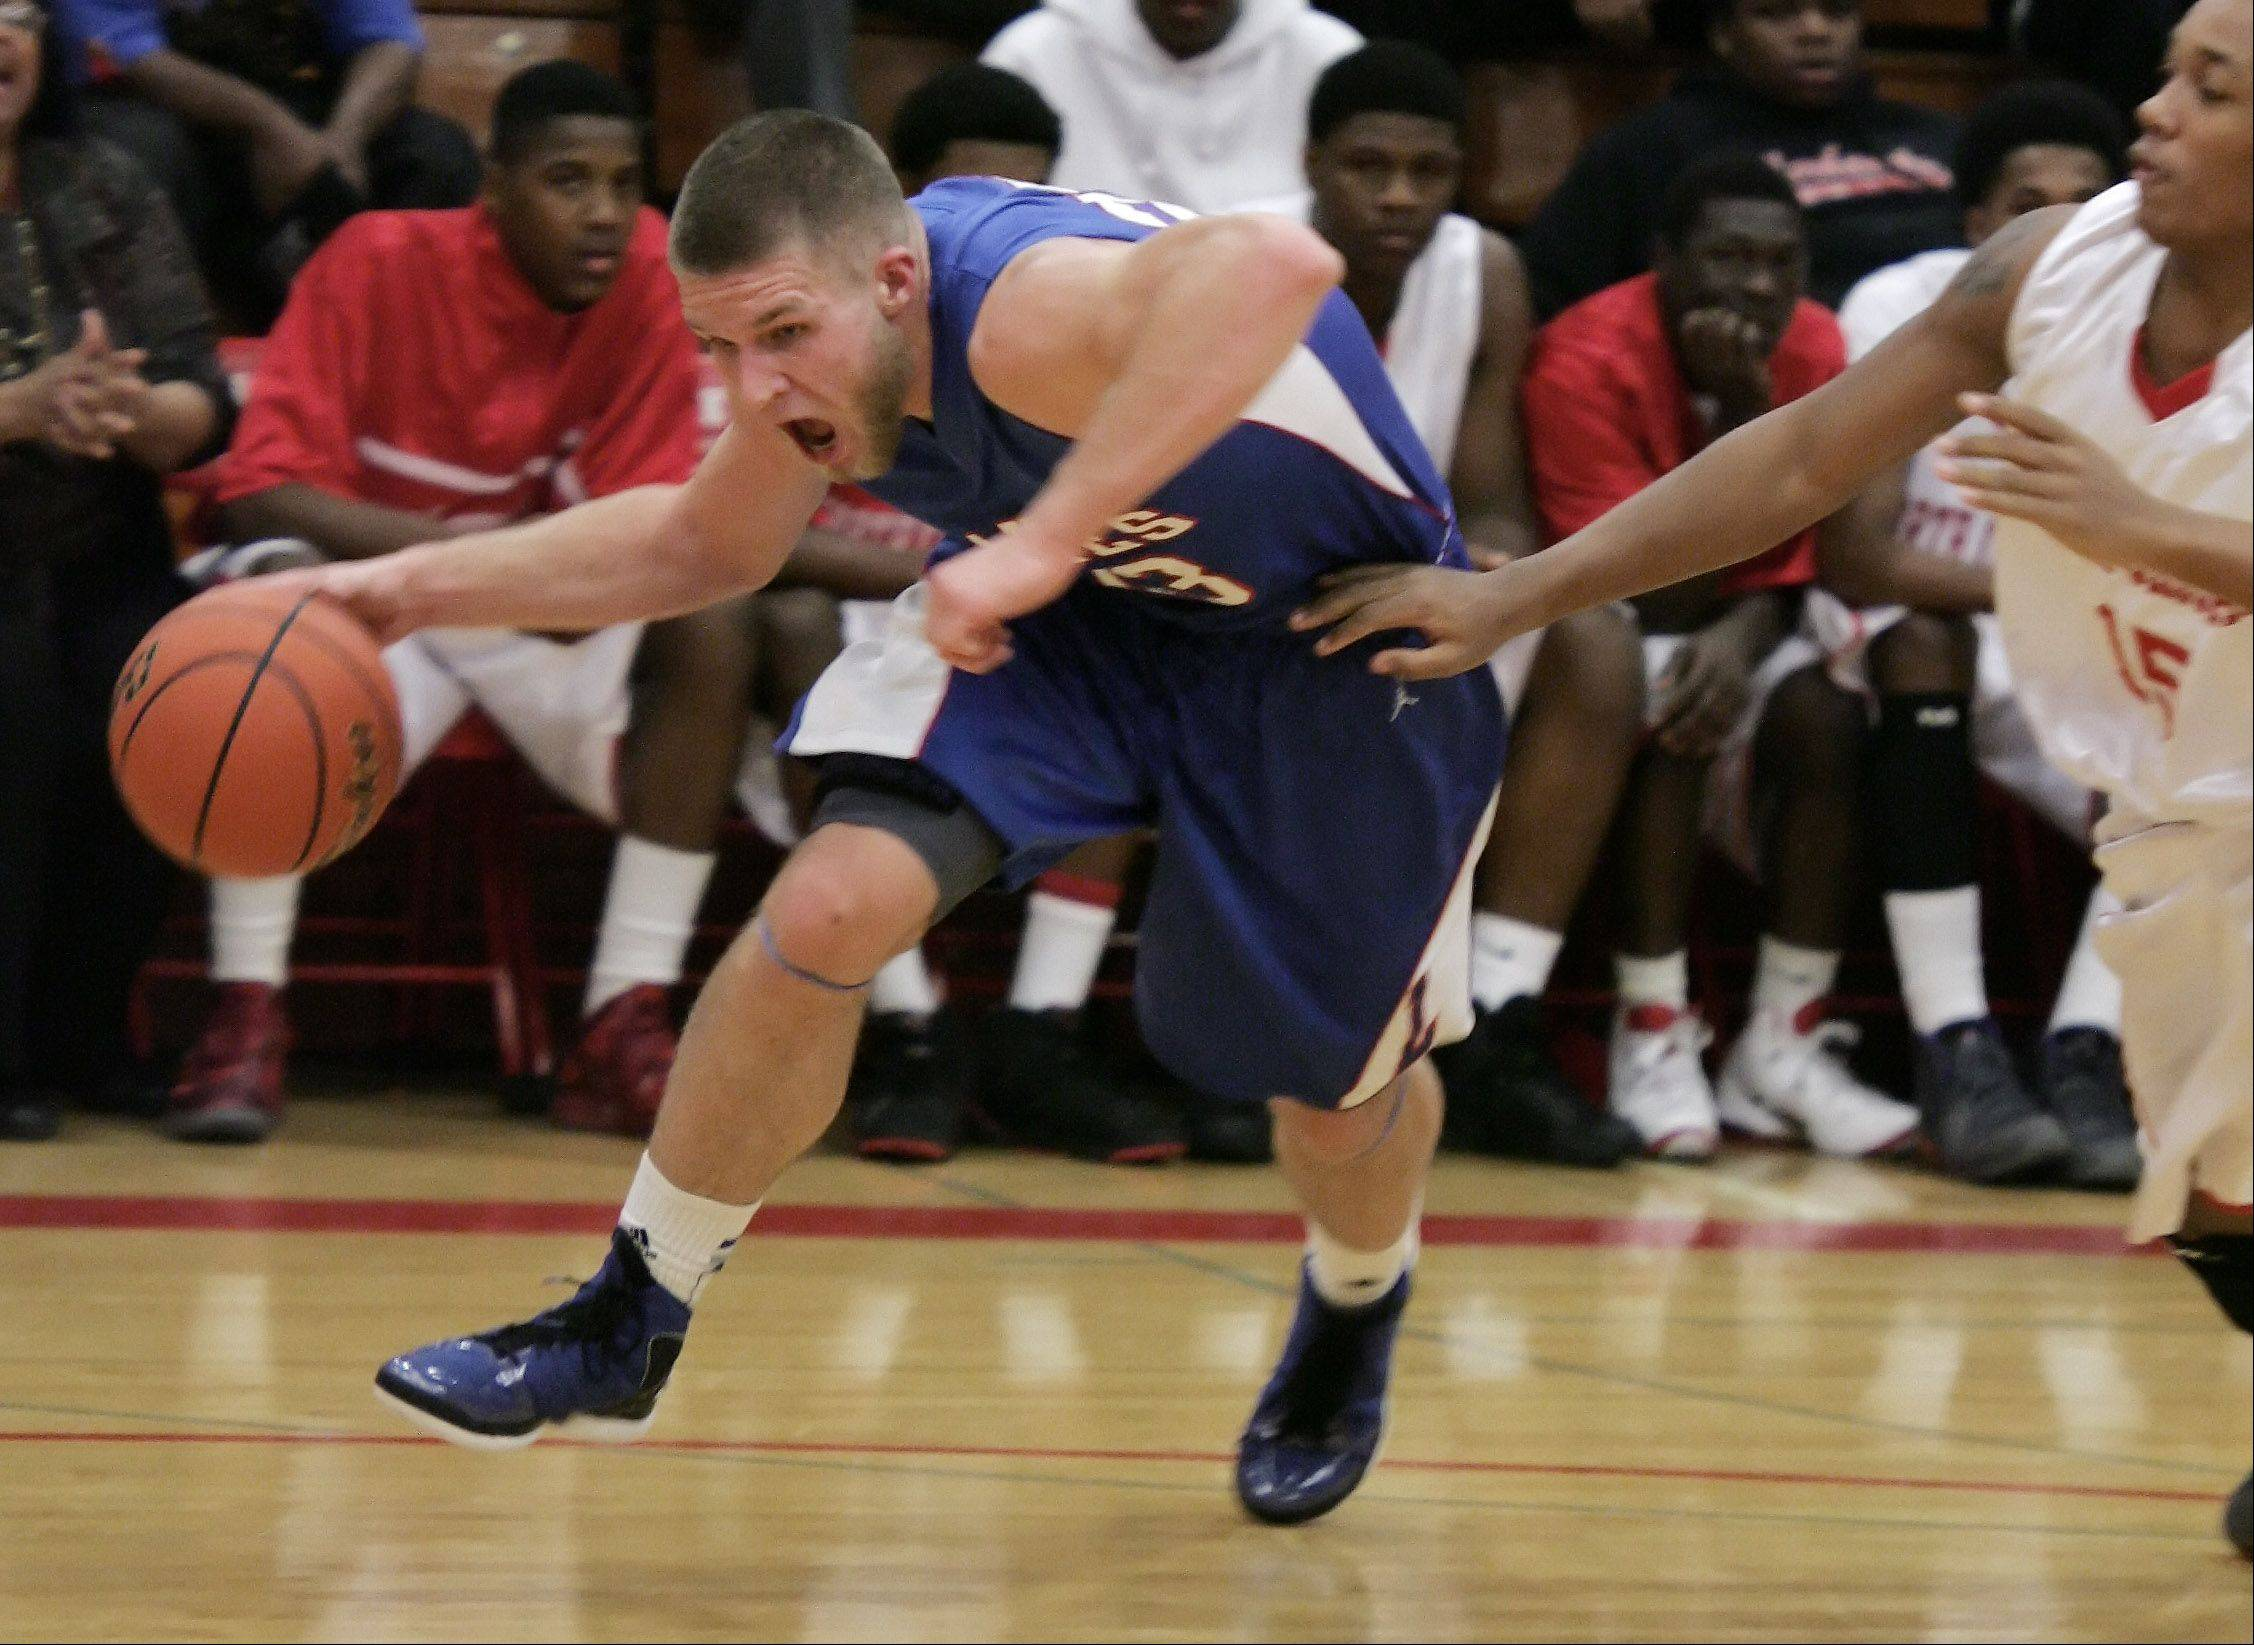 Lakes' Jake Kohler drives to the hoop during Thursday's game in North Chicago.